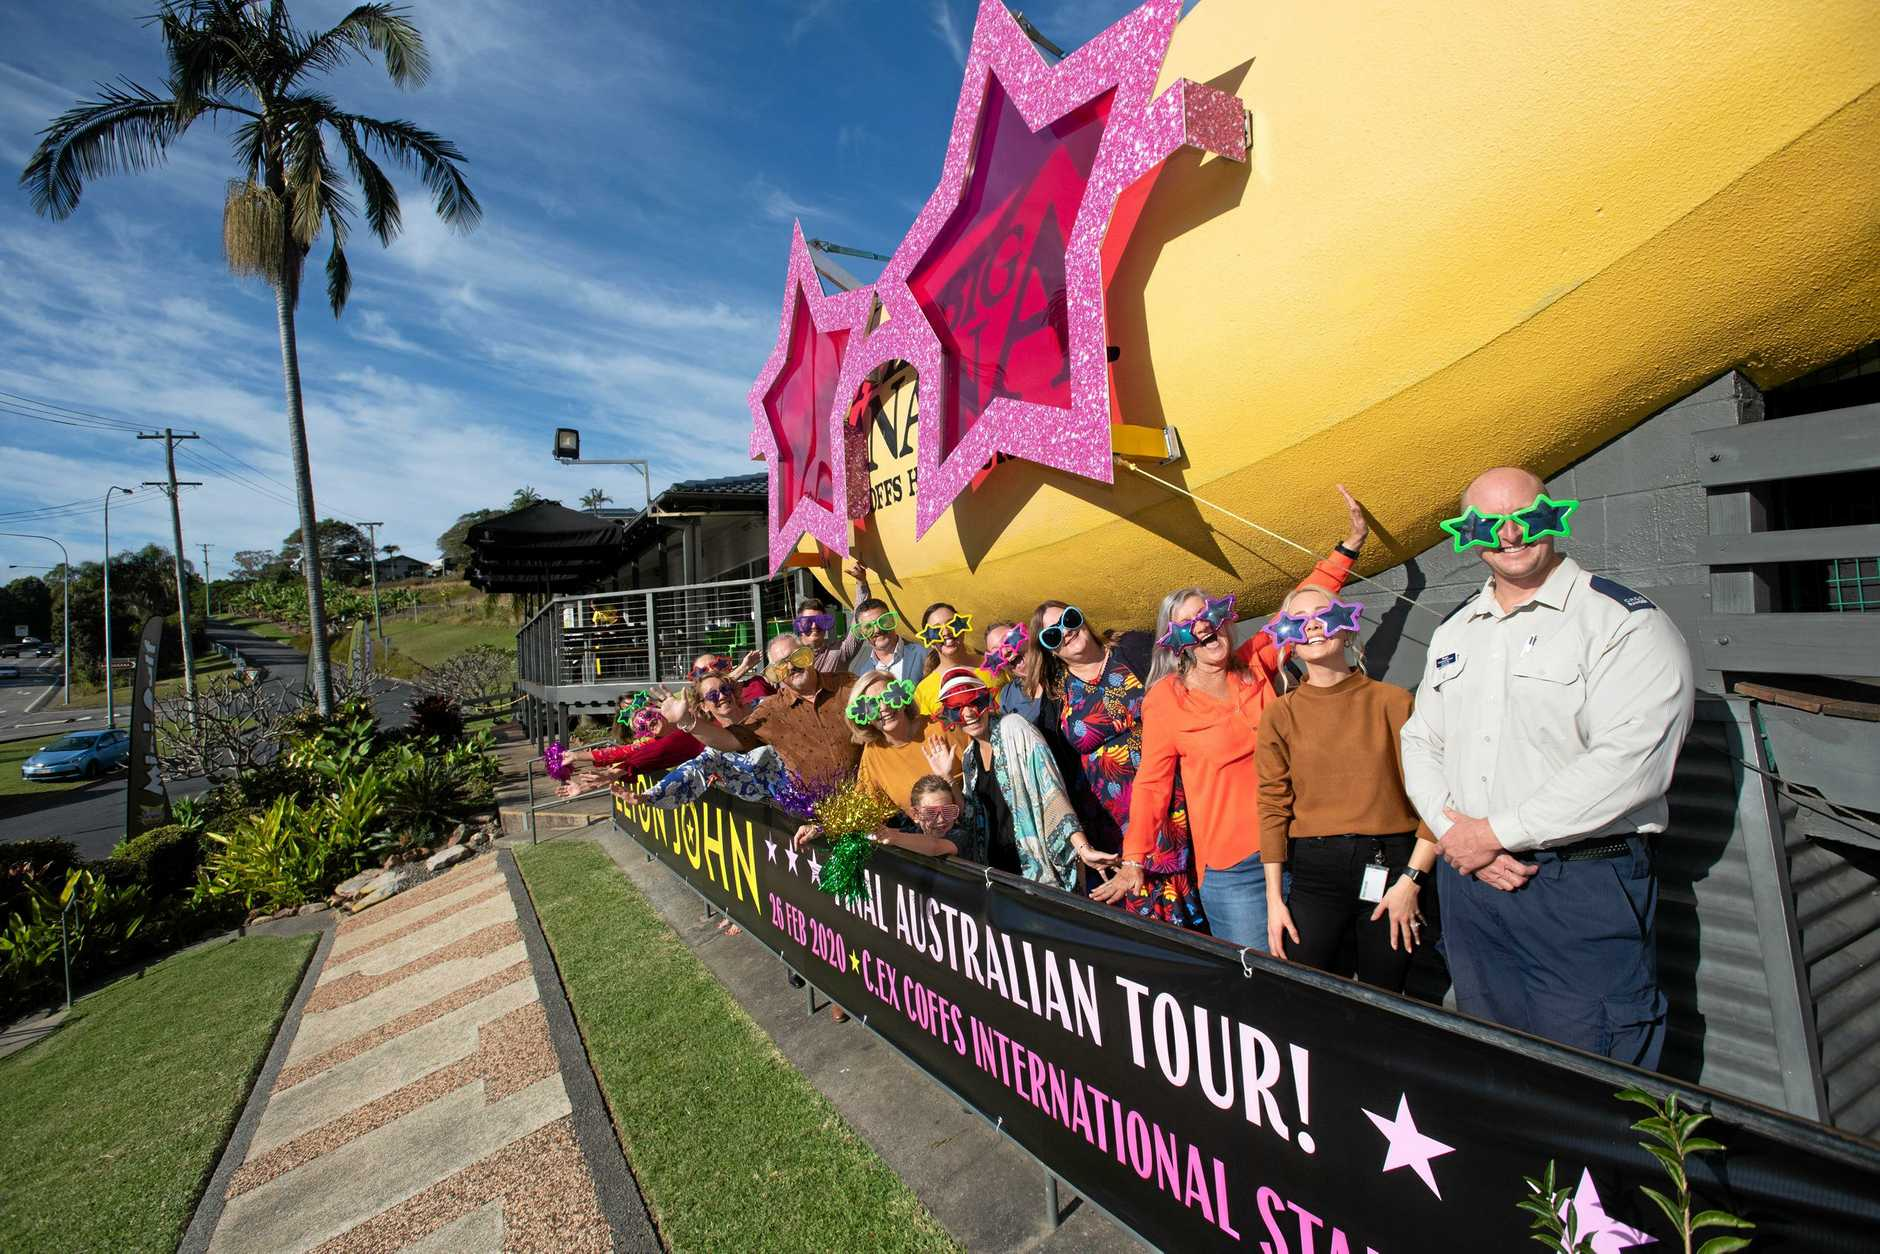 ELTON INSPIRED: The Big Banana's tribute to Rocketman.